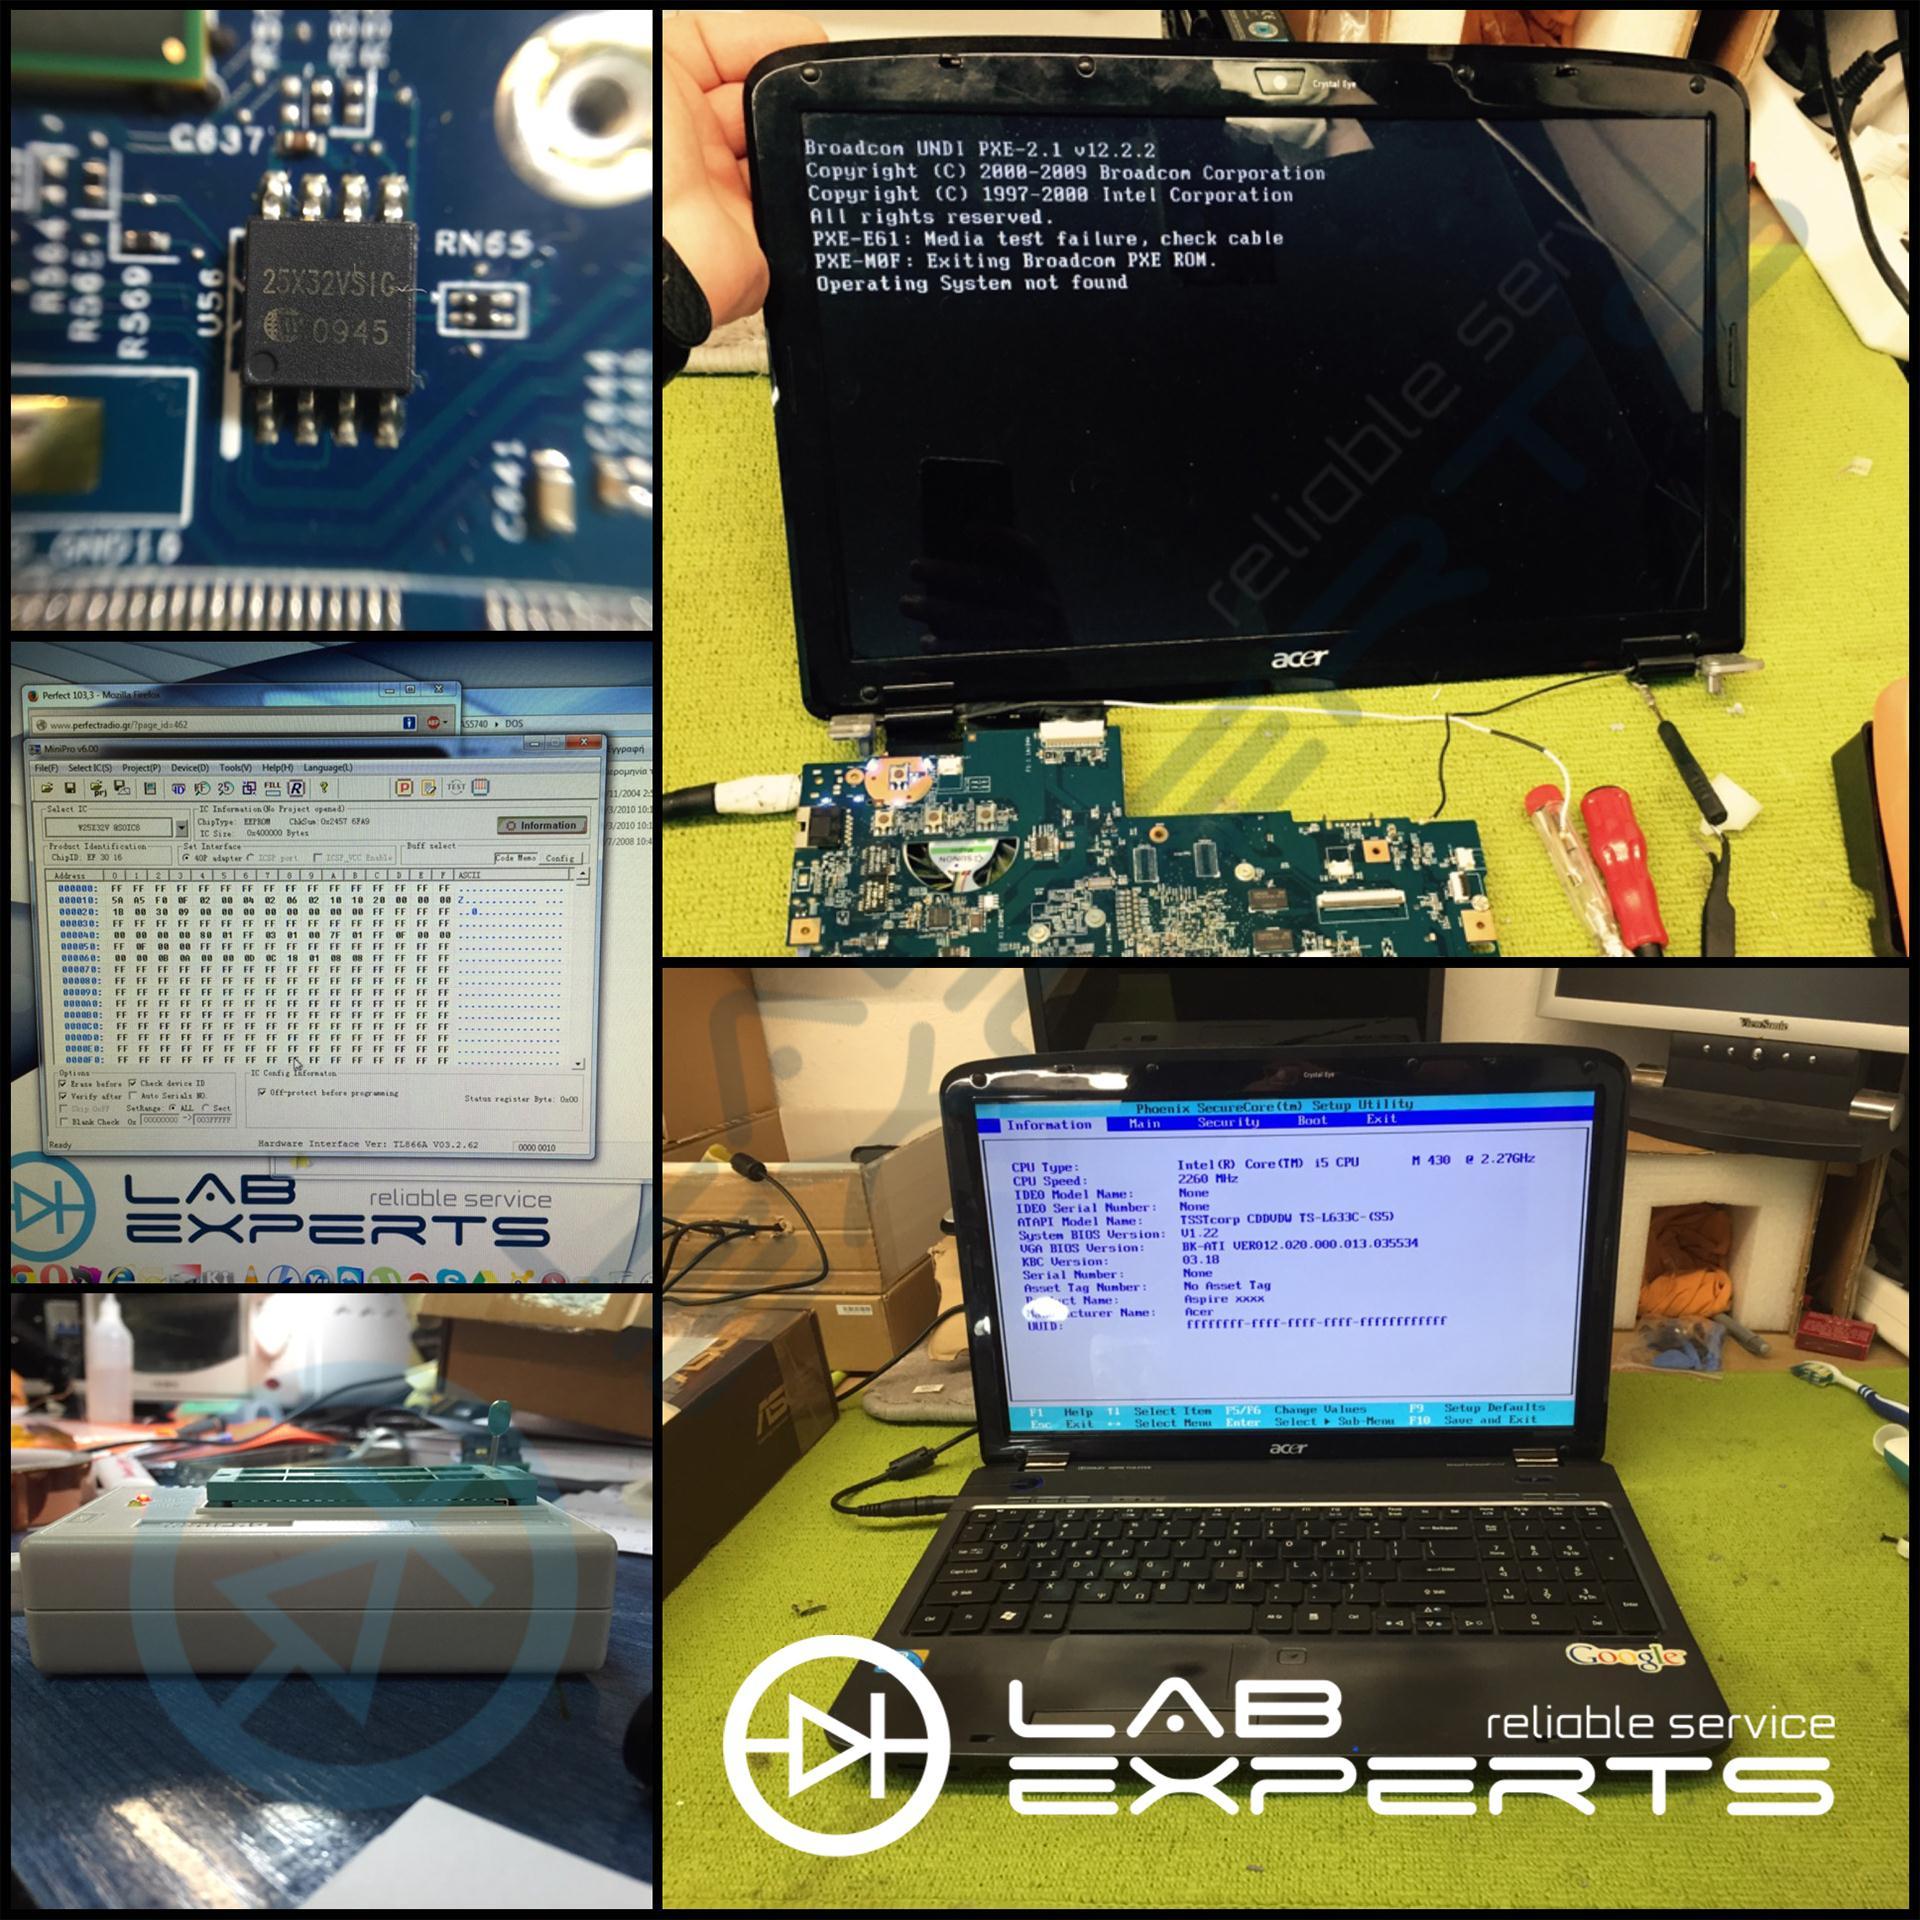 bios update Archives - Lab-Experts gr